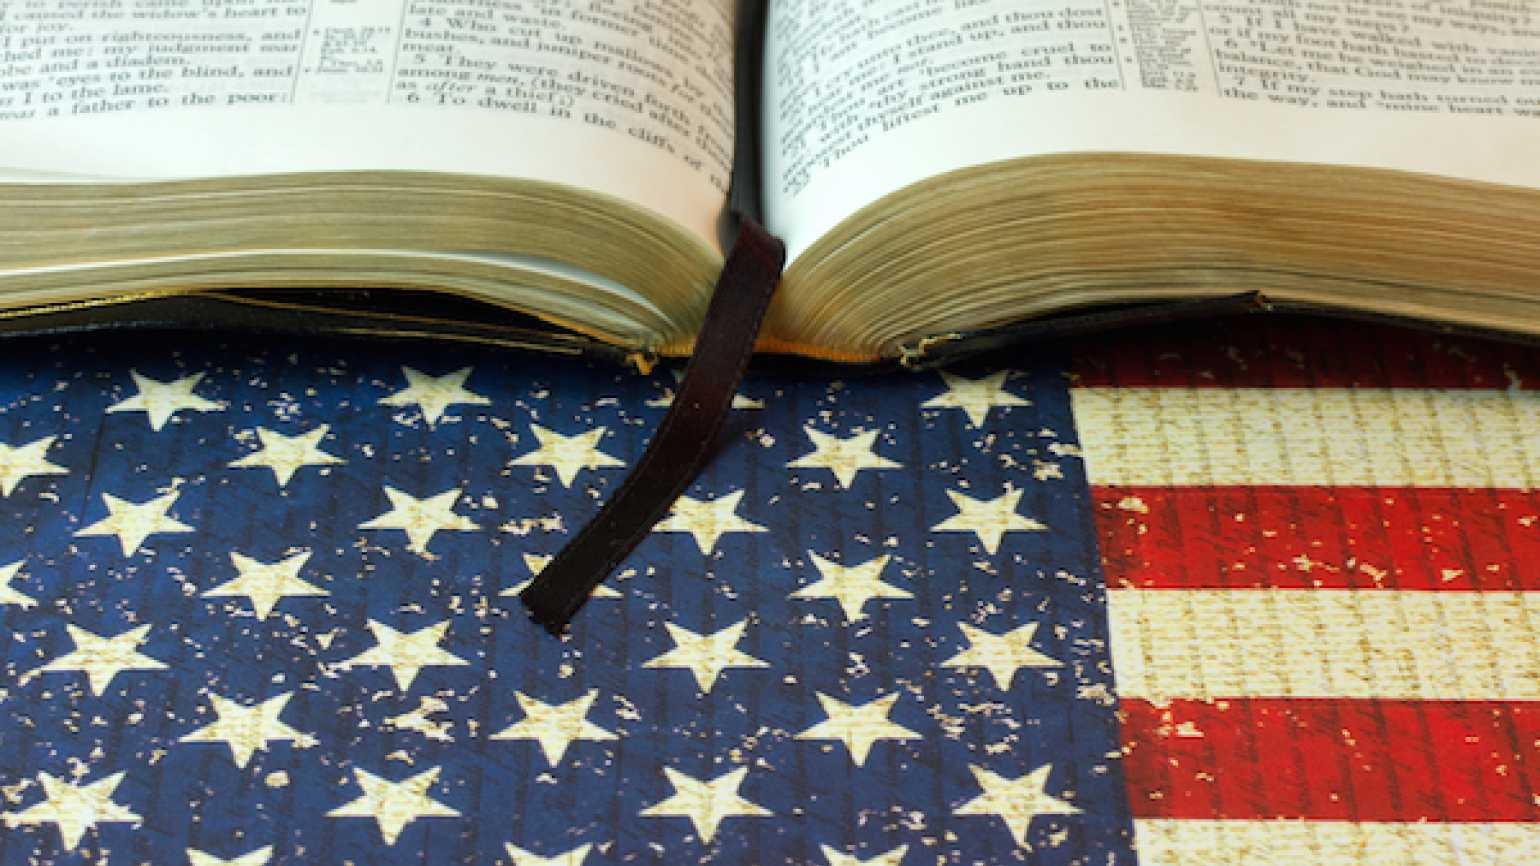 How to pray on the 4th of July